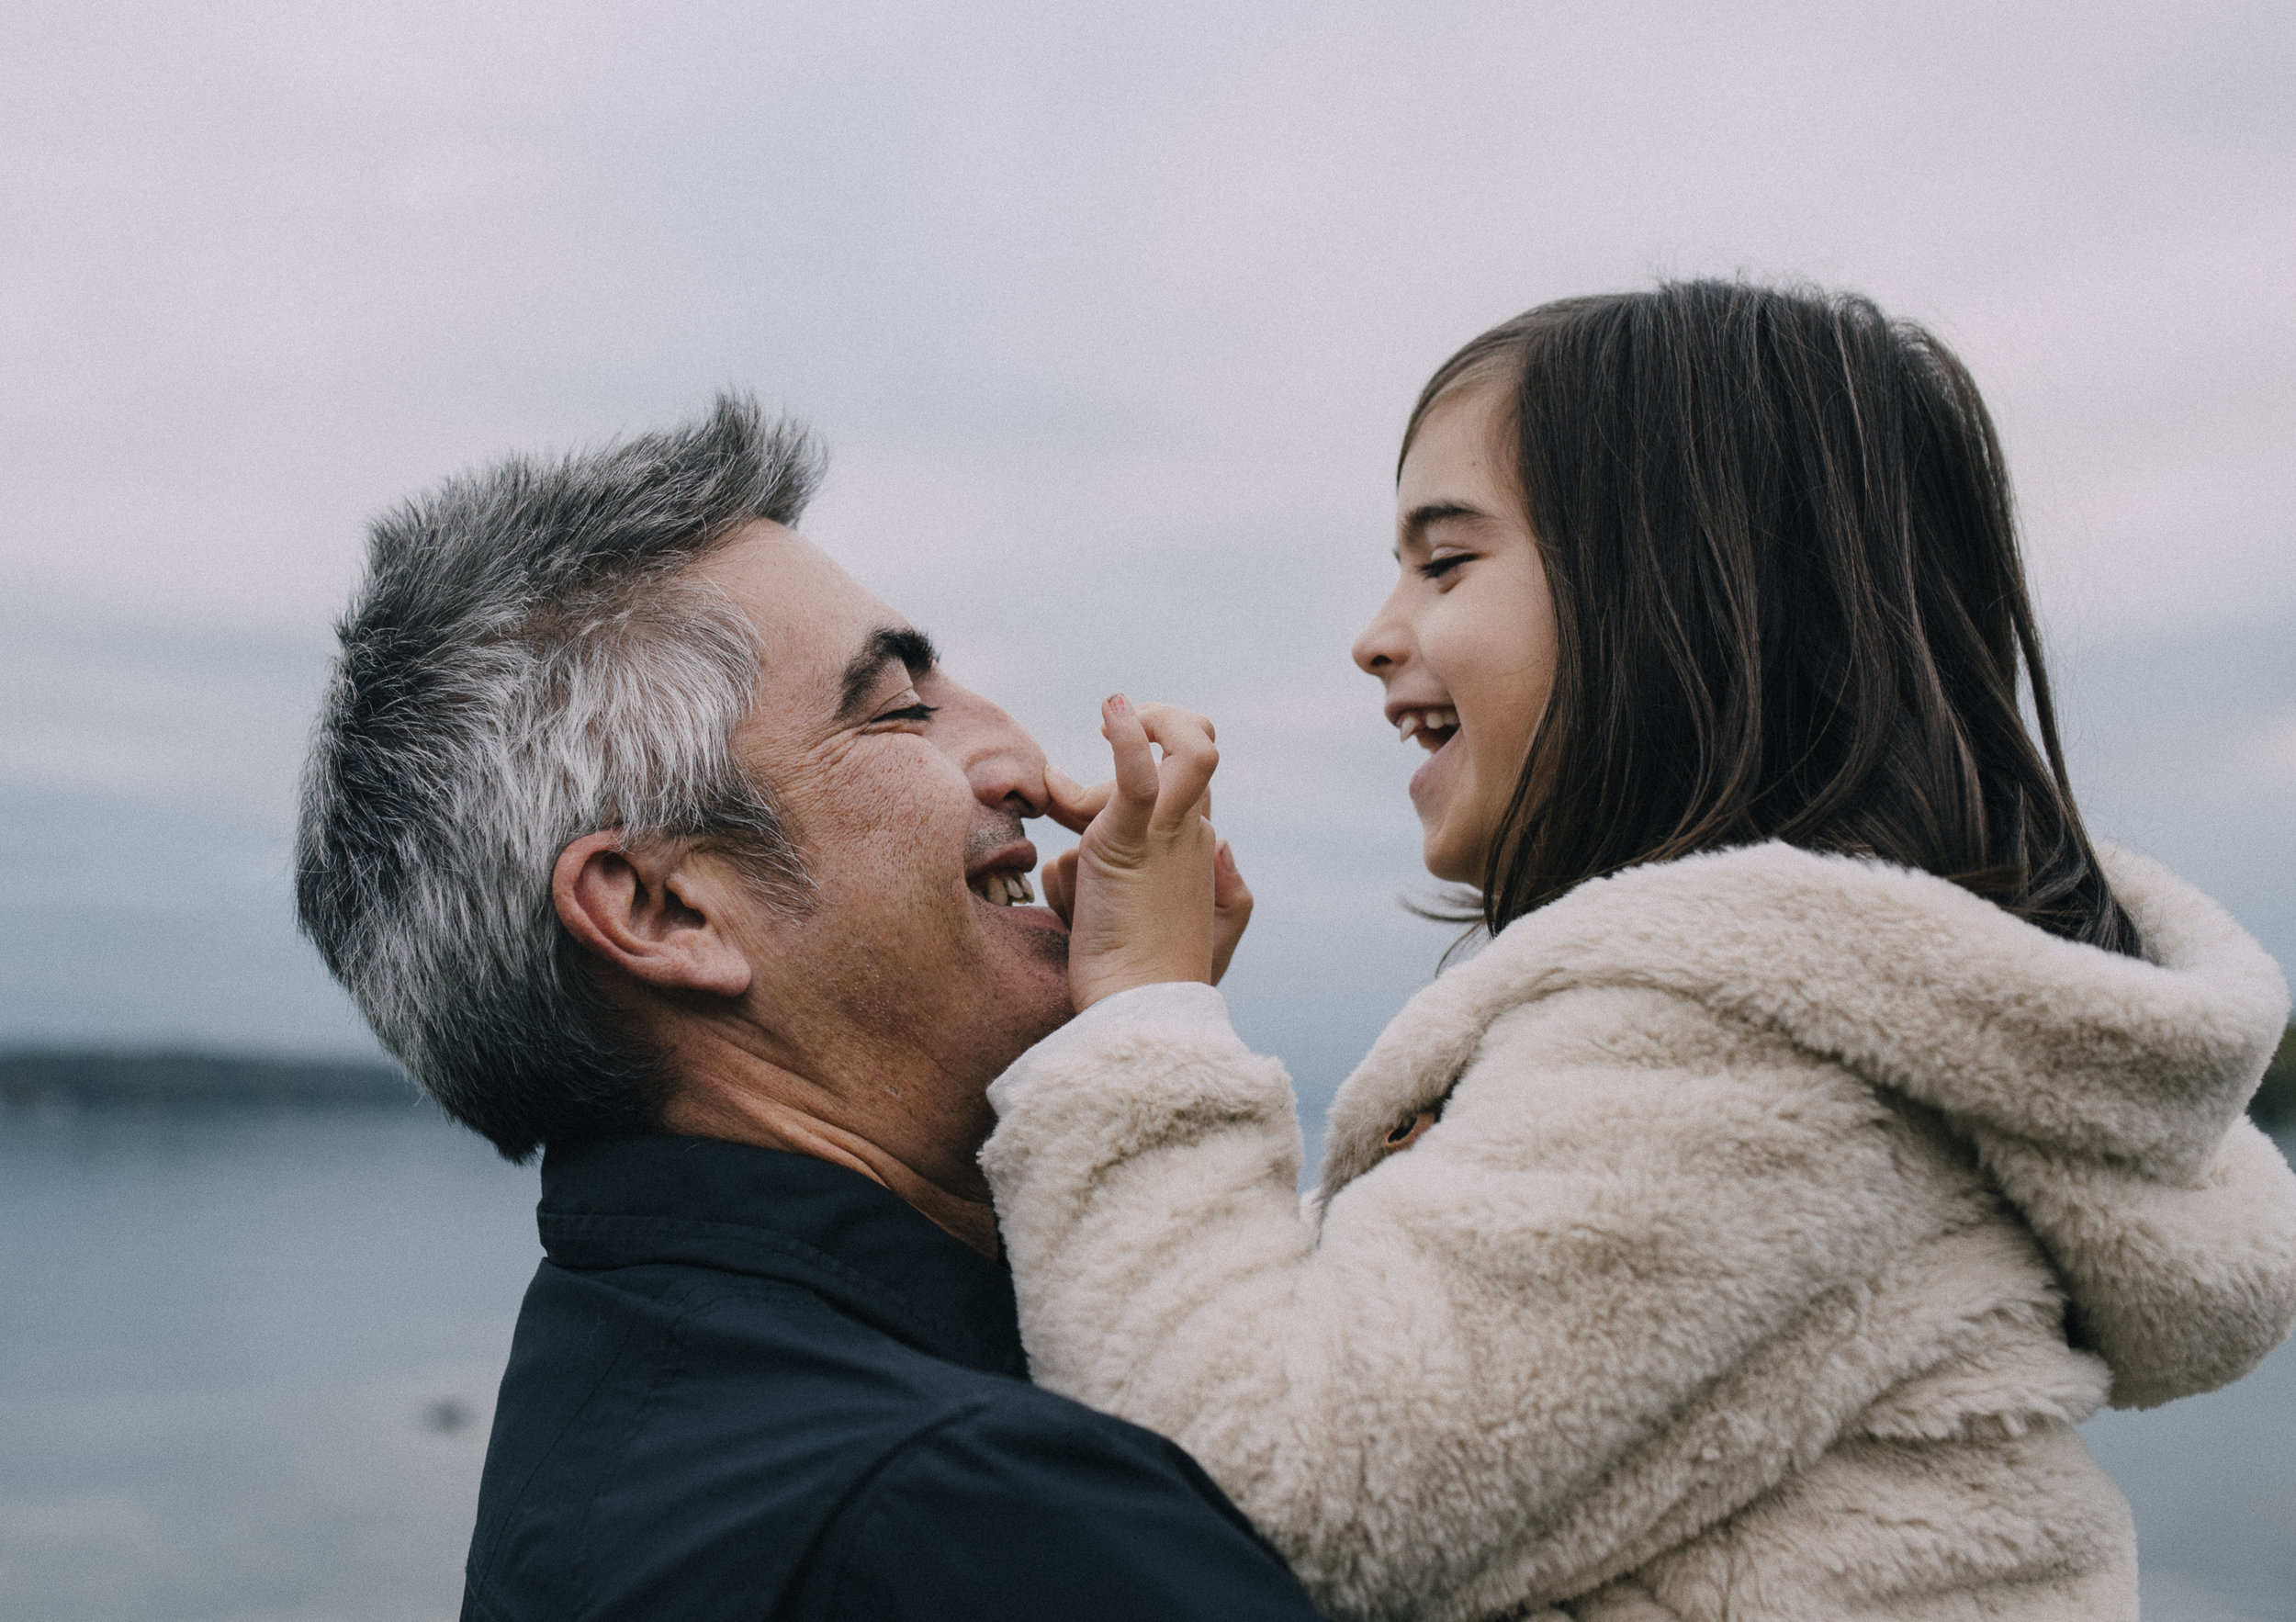 Father and daughter sweet moment